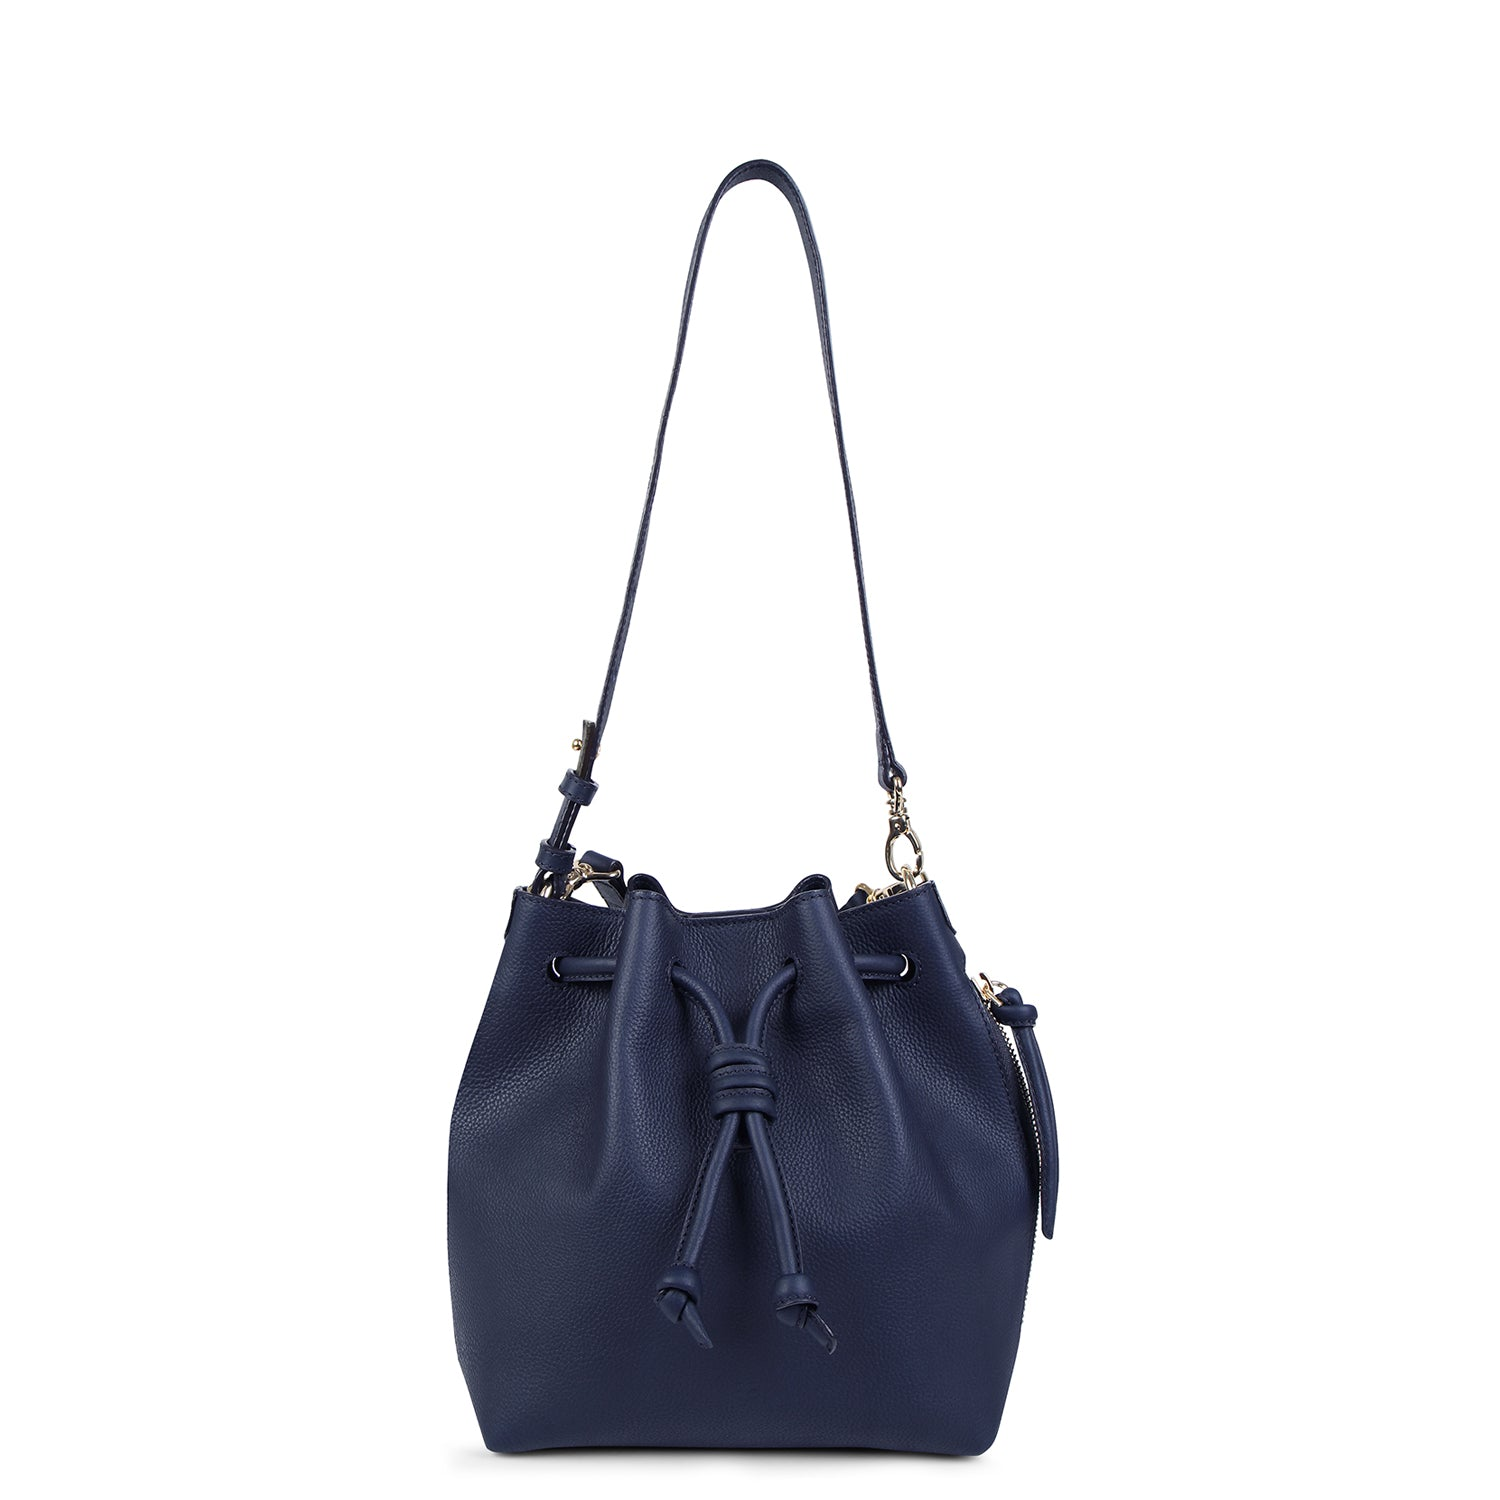 A convertible medium leather bucket crossbody bag in sparkly navy that could be used as a backpack, front image.